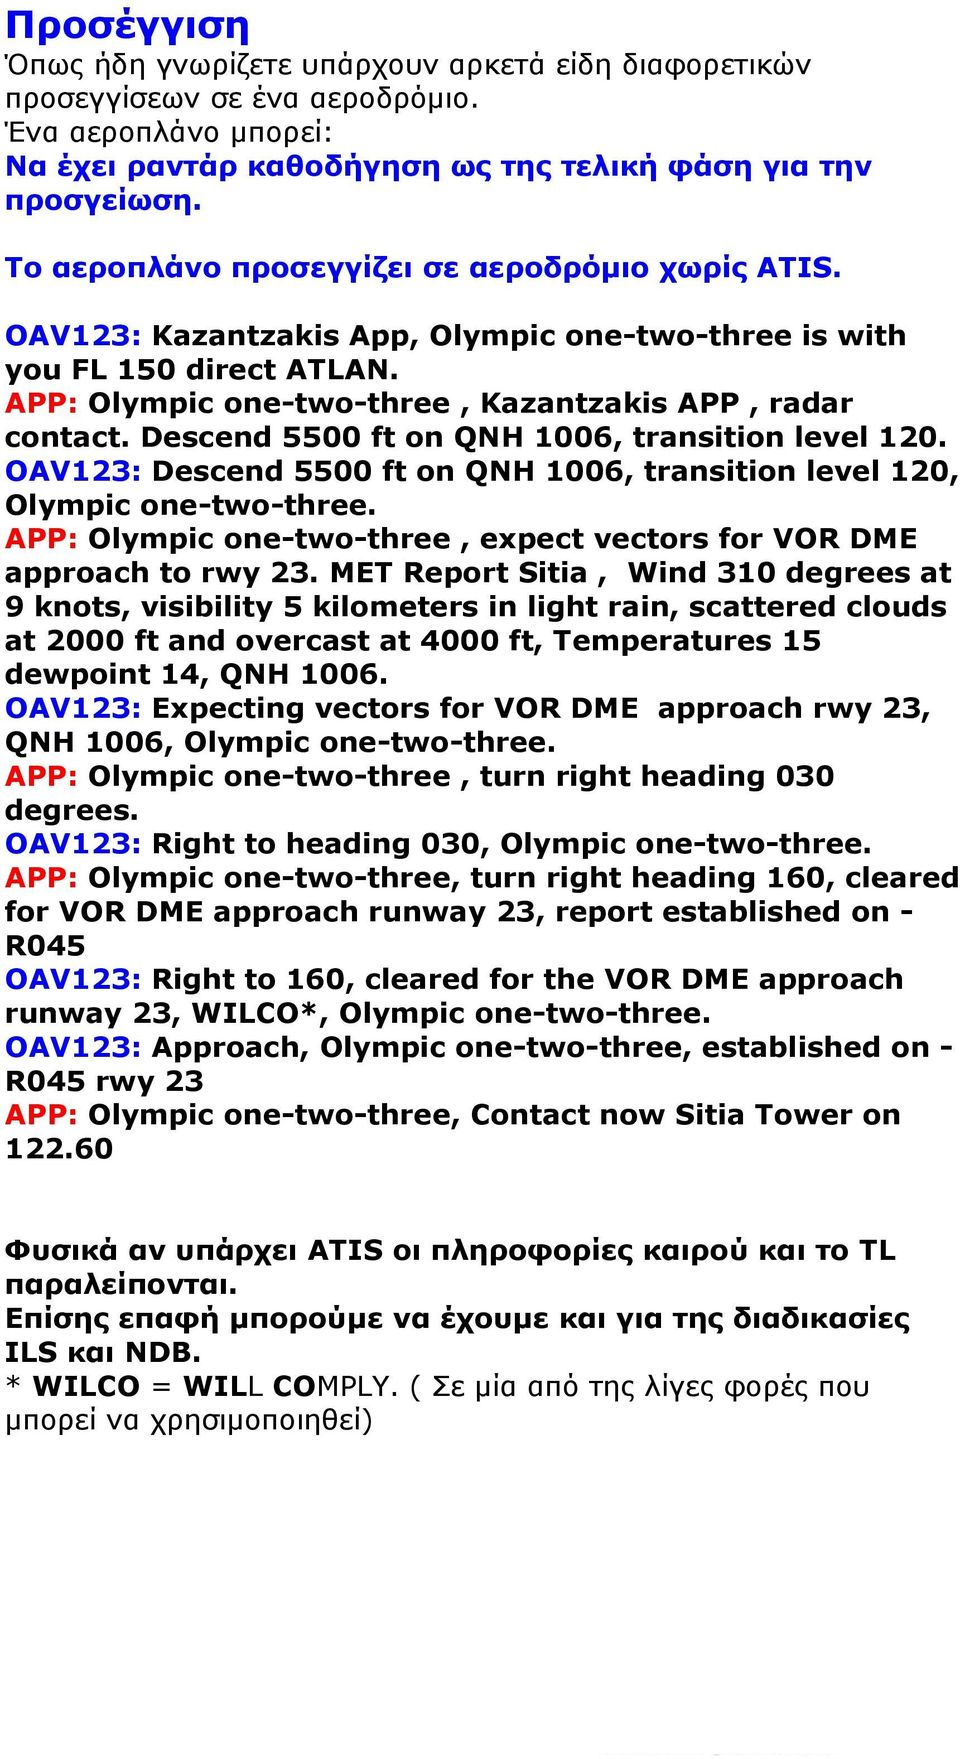 Descend 5500 ft on QNH 1006, transition level 120. OAV123: Descend 5500 ft on QNH 1006, transition level 120, Olympic one-two-three.